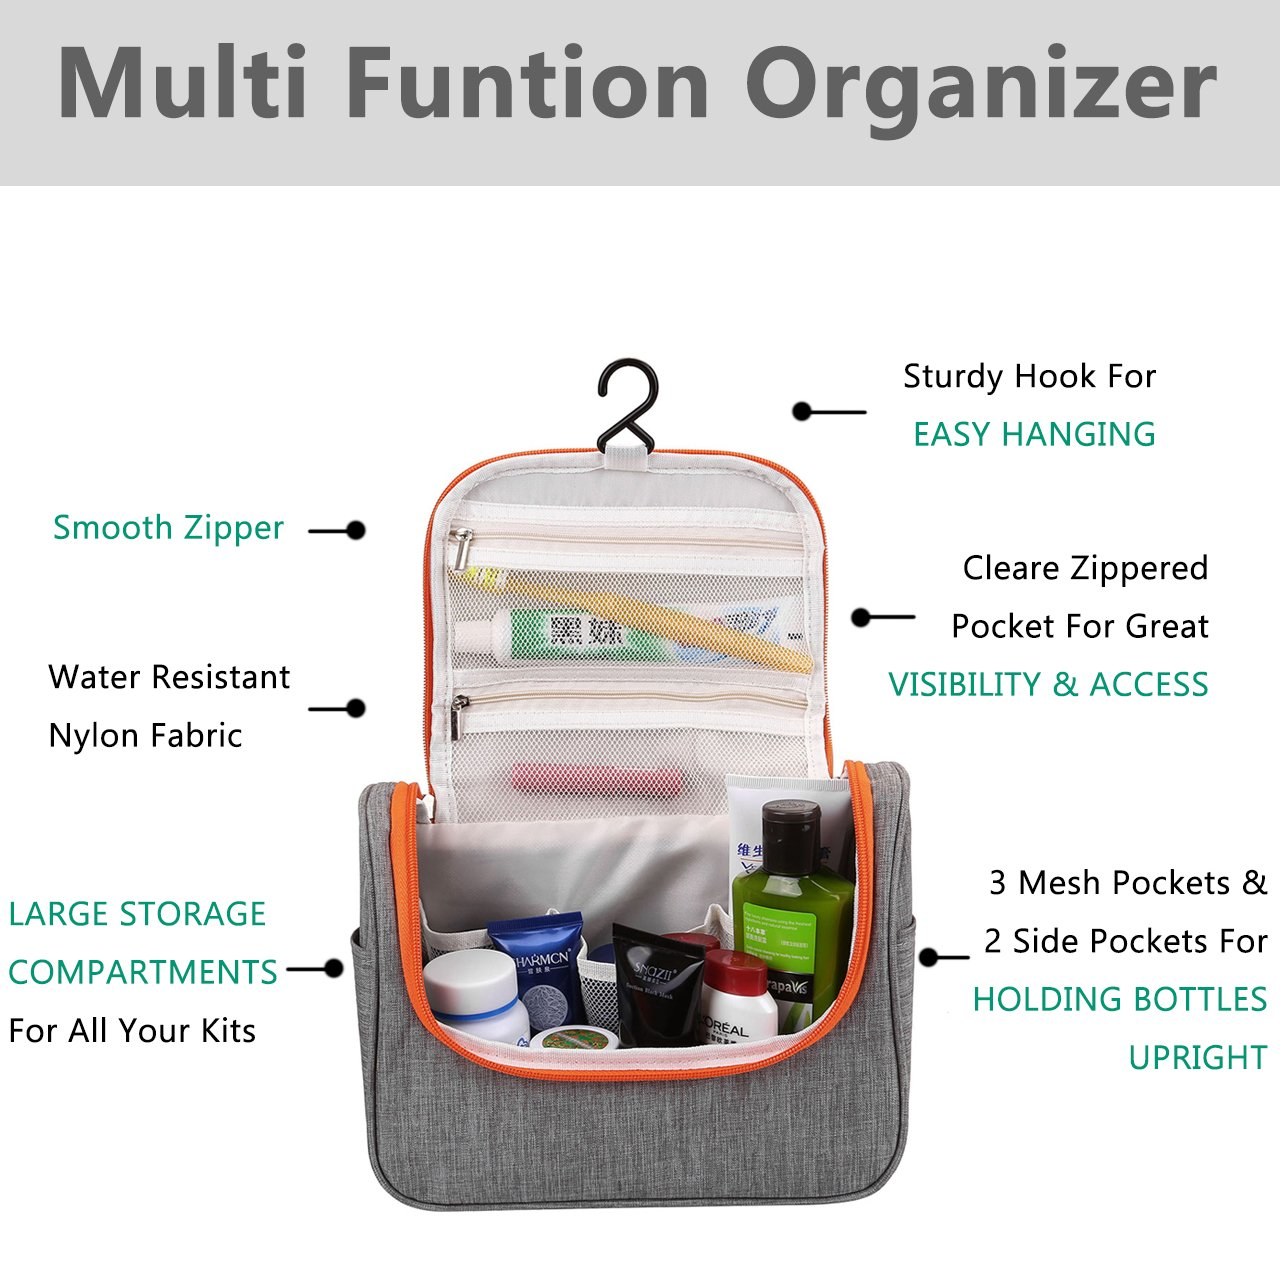 CozyCabin Hanging Toiletry Bag Travel Toiletry Kit for Men Women Toiletries Cosmetics Water Resistant with Mesh Pockets & Sturdy Nylon Hanging Hook Shower Bag, Organizer for Travel Accessories